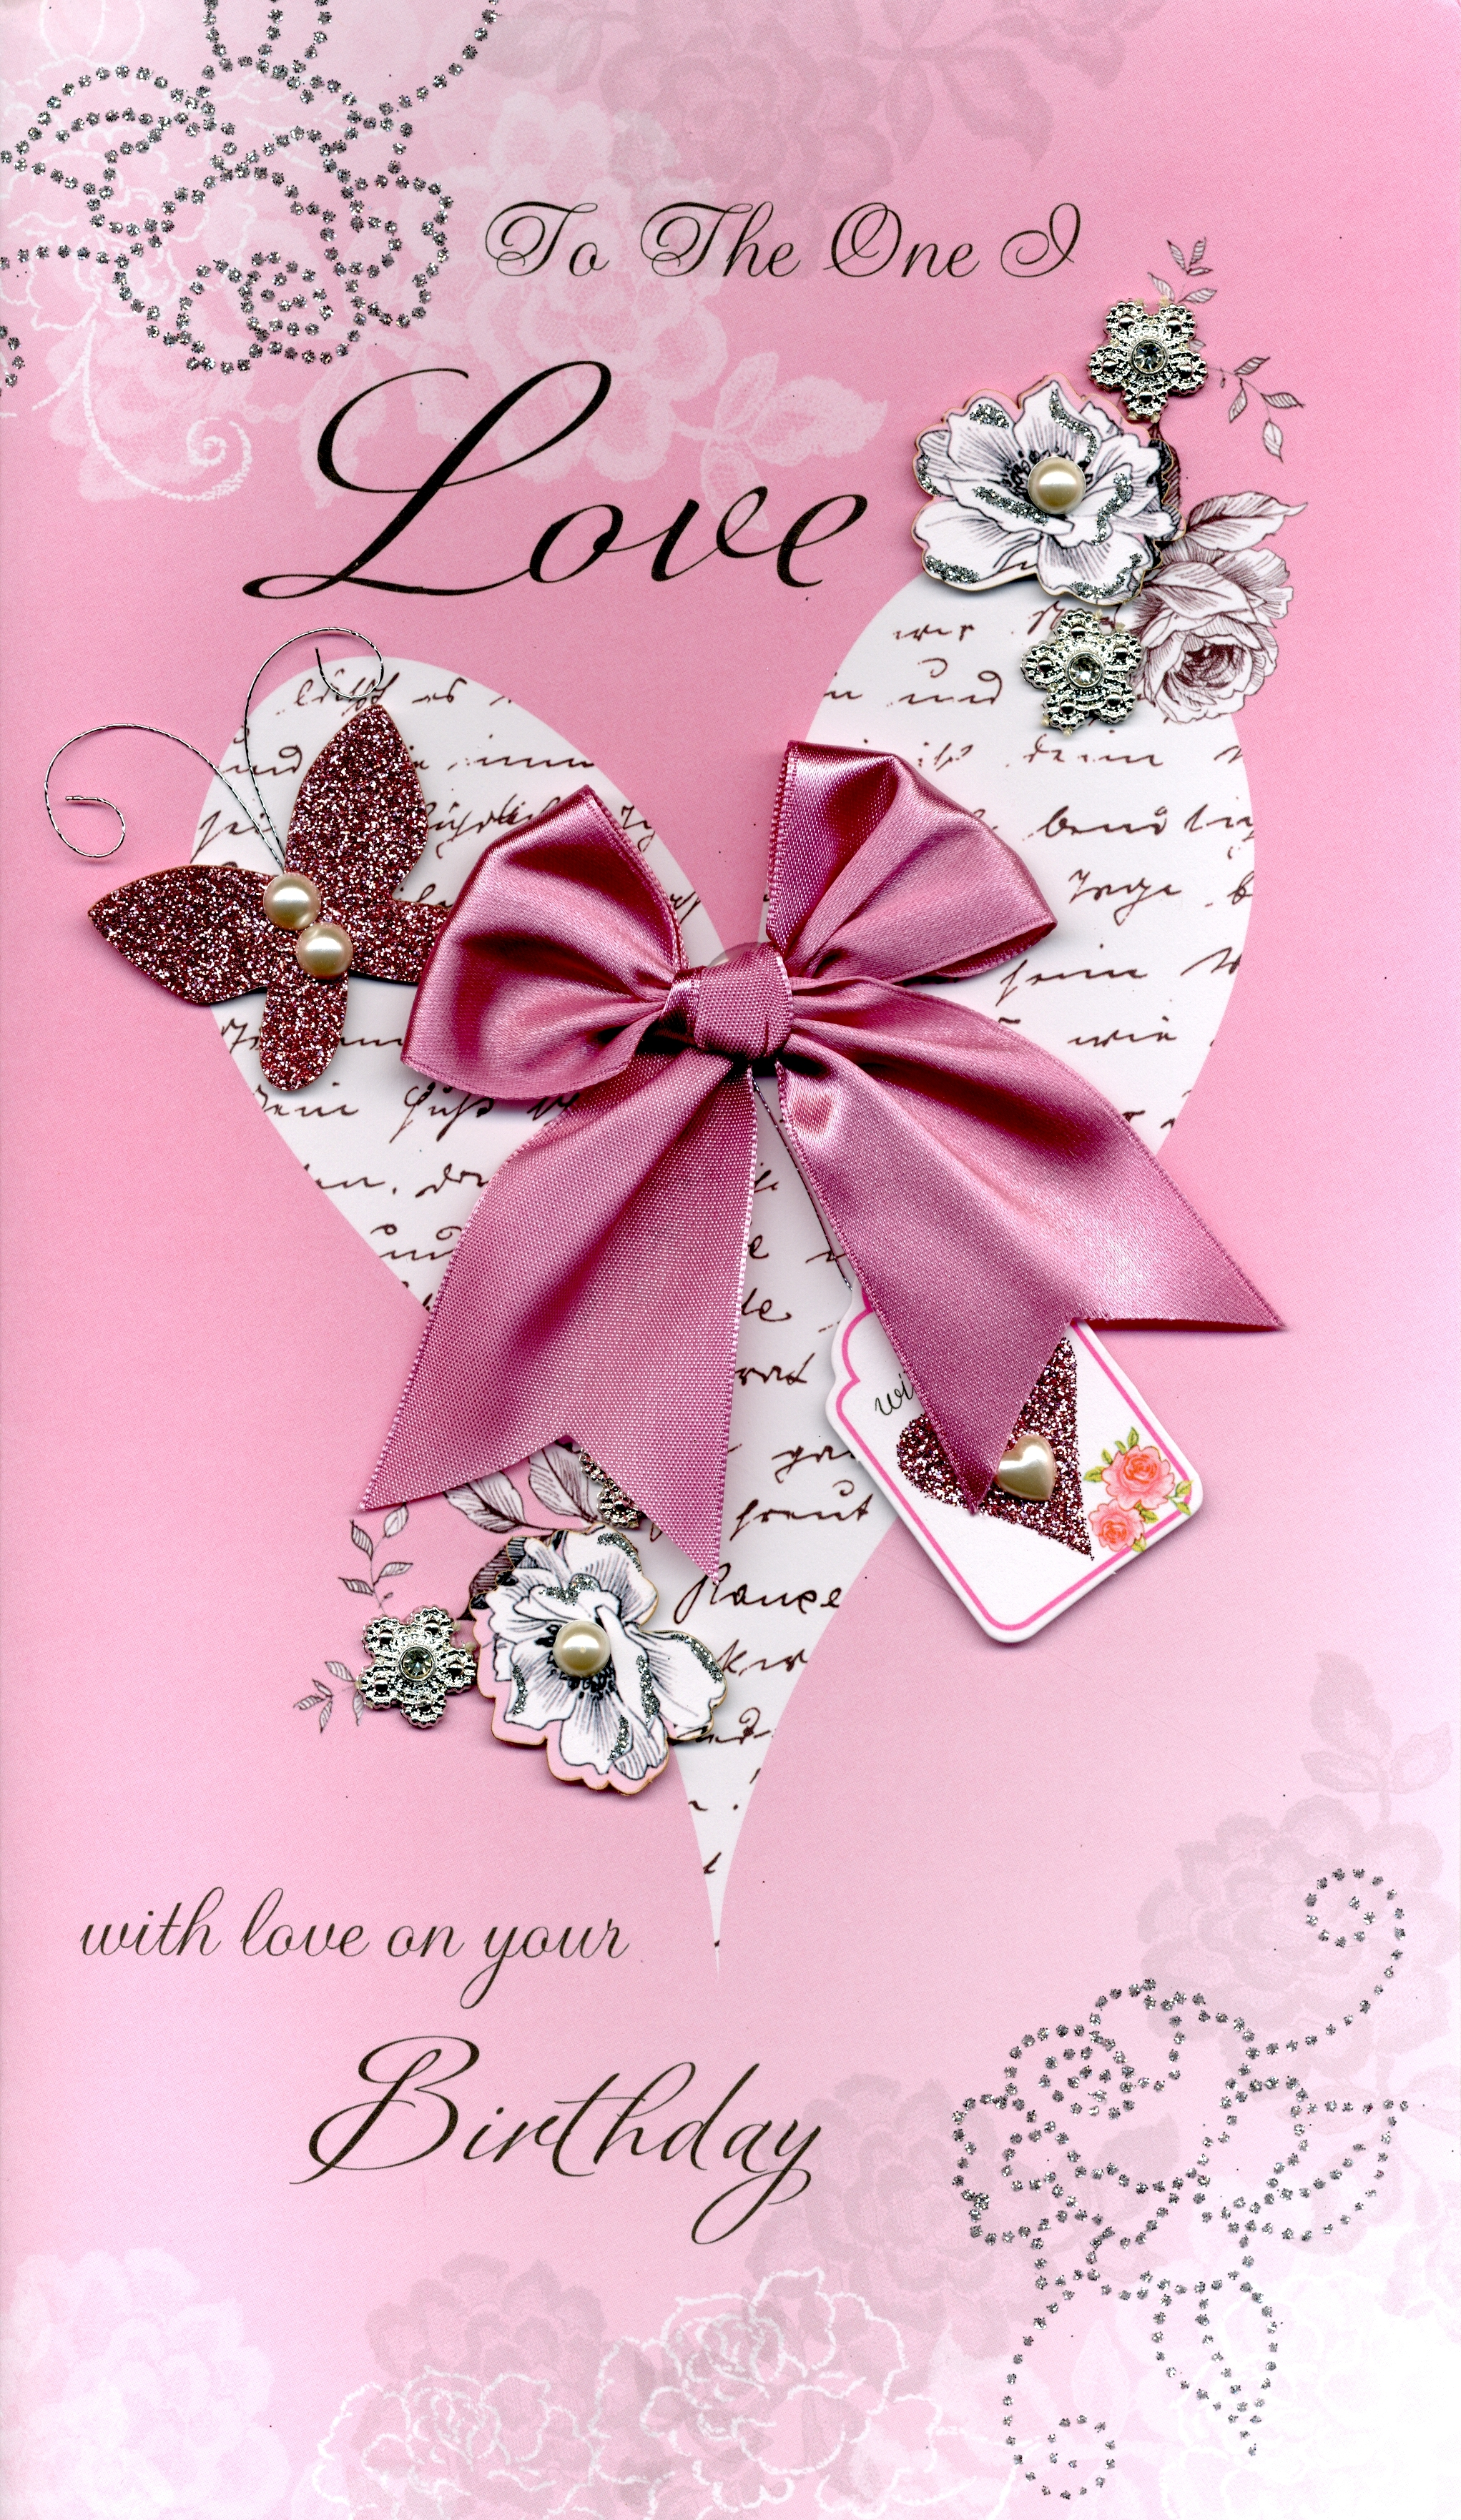 Boxed to the one i love embellished birthday greeting card cards boxed to the one i love embellished birthday greeting card kristyandbryce Image collections